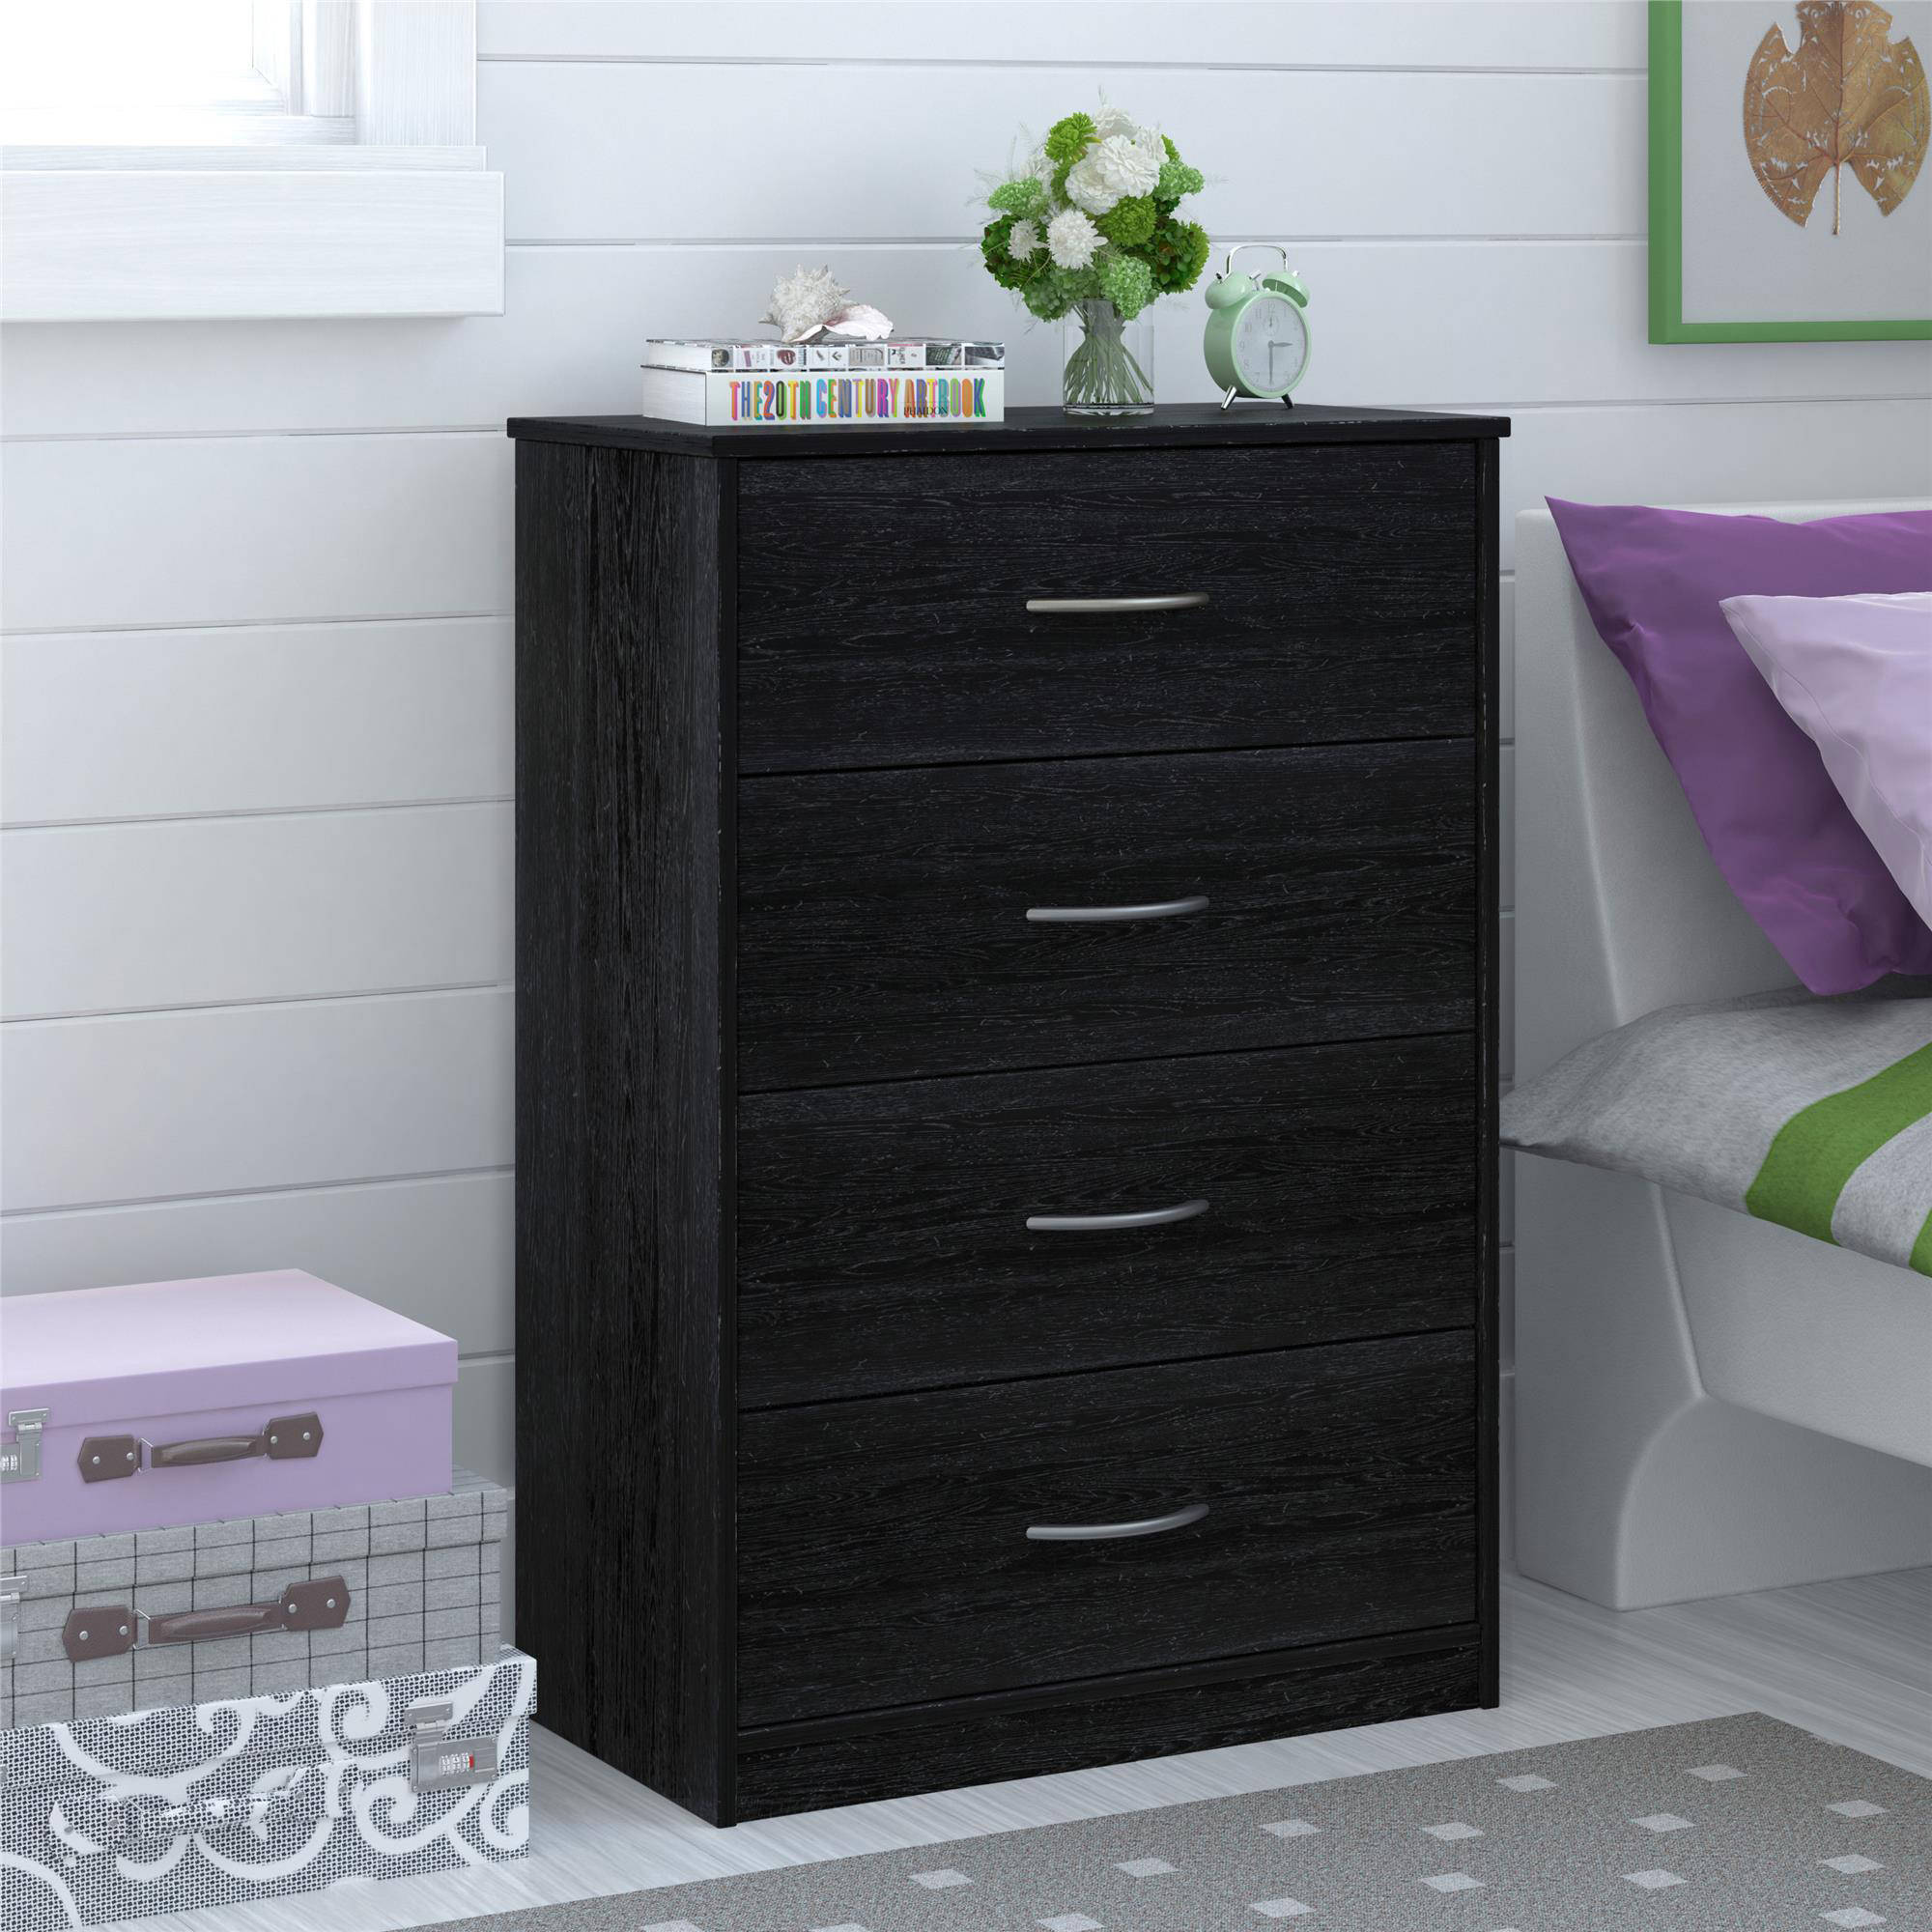 luxury 4 drawer dresser with bedding sets comforters